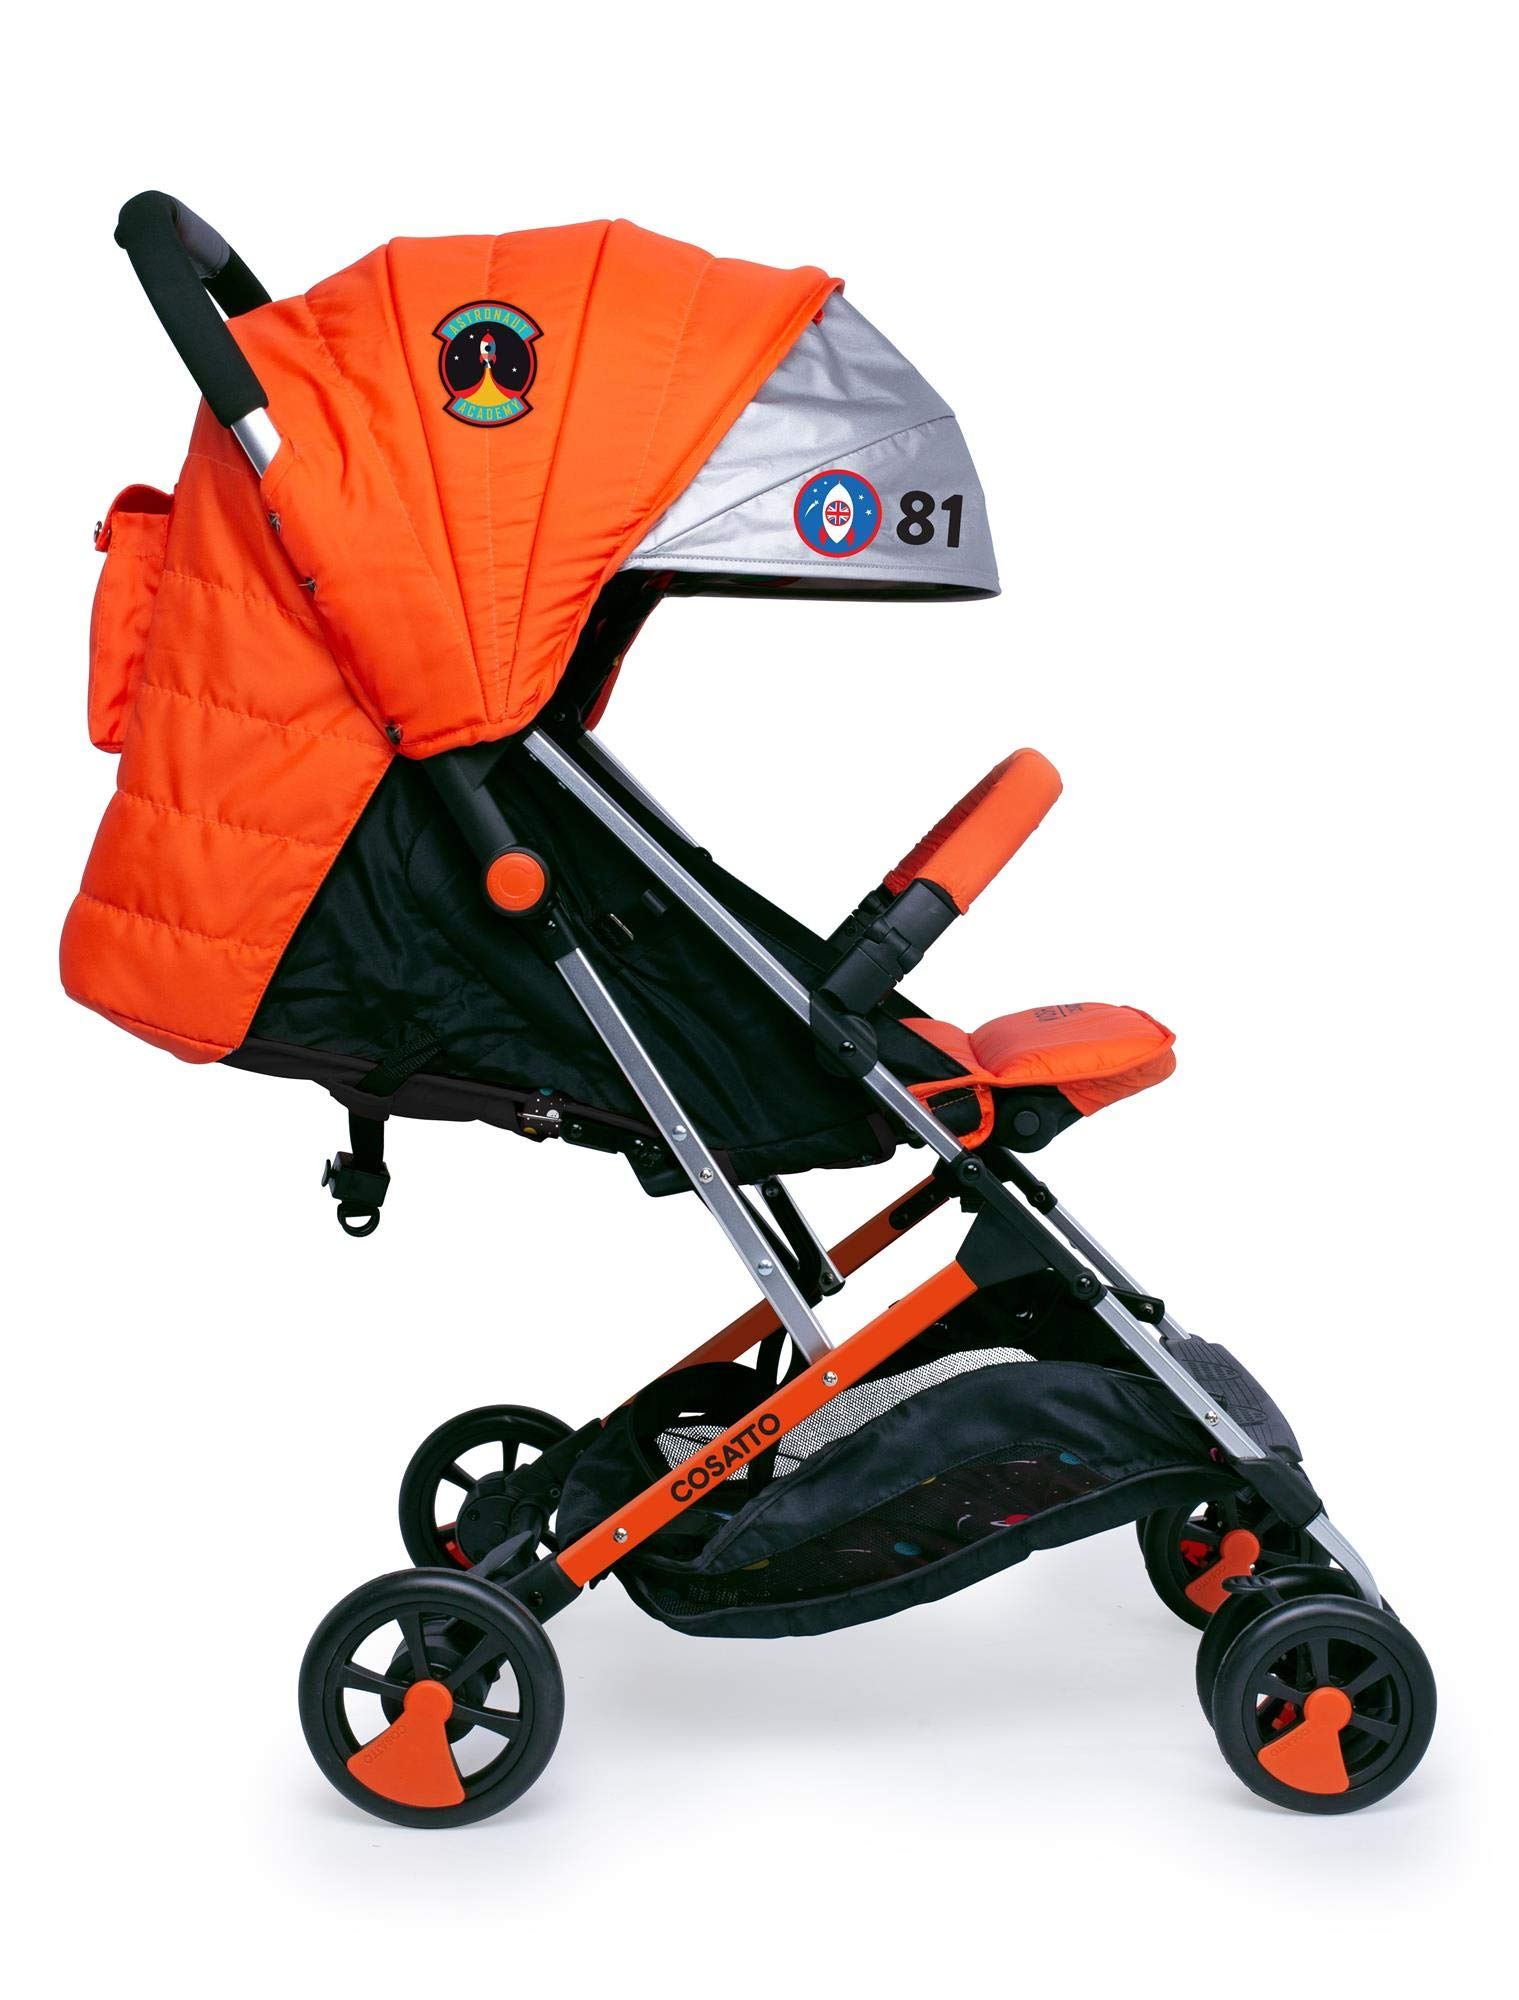 Cosatto Woosh 2 Stroller Spaceman with raincover and Bumper bar Birth to 25kg Cosatto INCLUDES: The pushchair itself, Raincover, Bumper bar,4 year guarantee(UK and Ireland only) Suitable from birth to max weight of 25kg. Lets your toddler use it for even longer. Lightweight, sturdy aluminium frame. Newborn recline. Lightweight waterproof Ripstop fabric on seat. Lockable swivel front wheels for quick manoeuvres Roomy seat for extra comfort. Removable bumper bar for extra support. Magic bell. Front & rear suspension for a smooth ride. 1